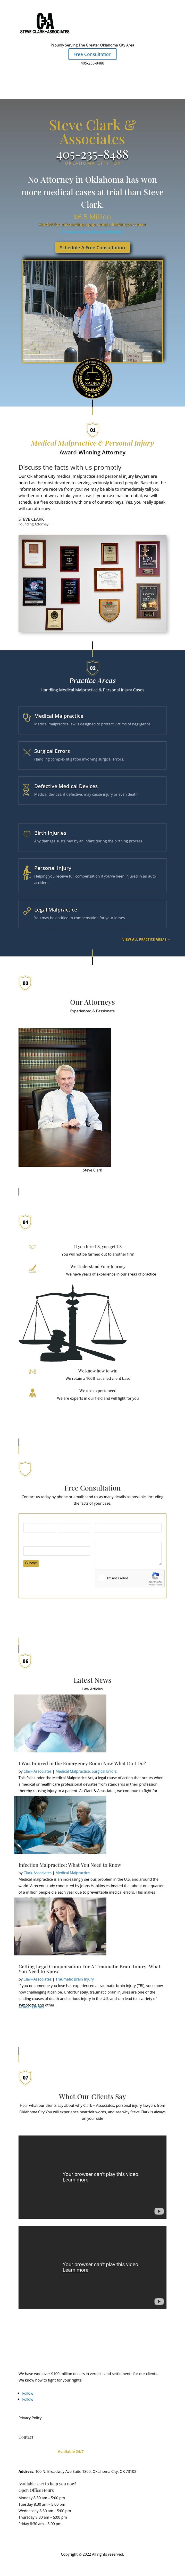 Clark & Mitchell - Oklahoma City OK Lawyers